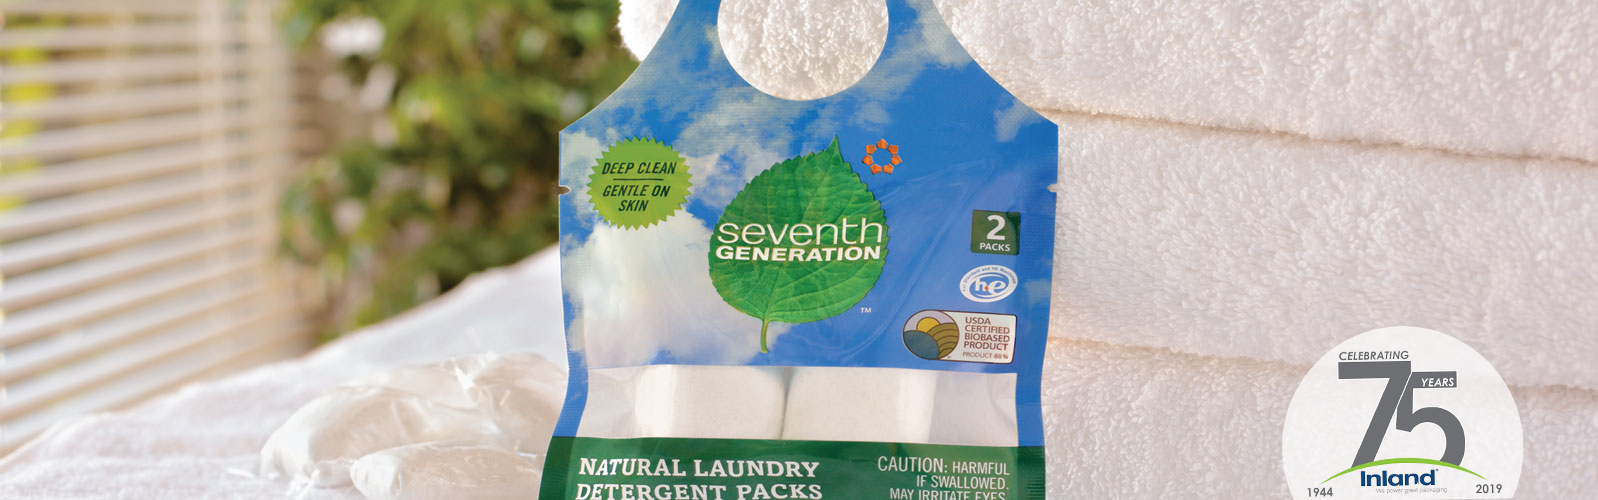 Seventh Generation Sachet Flexible Packaging